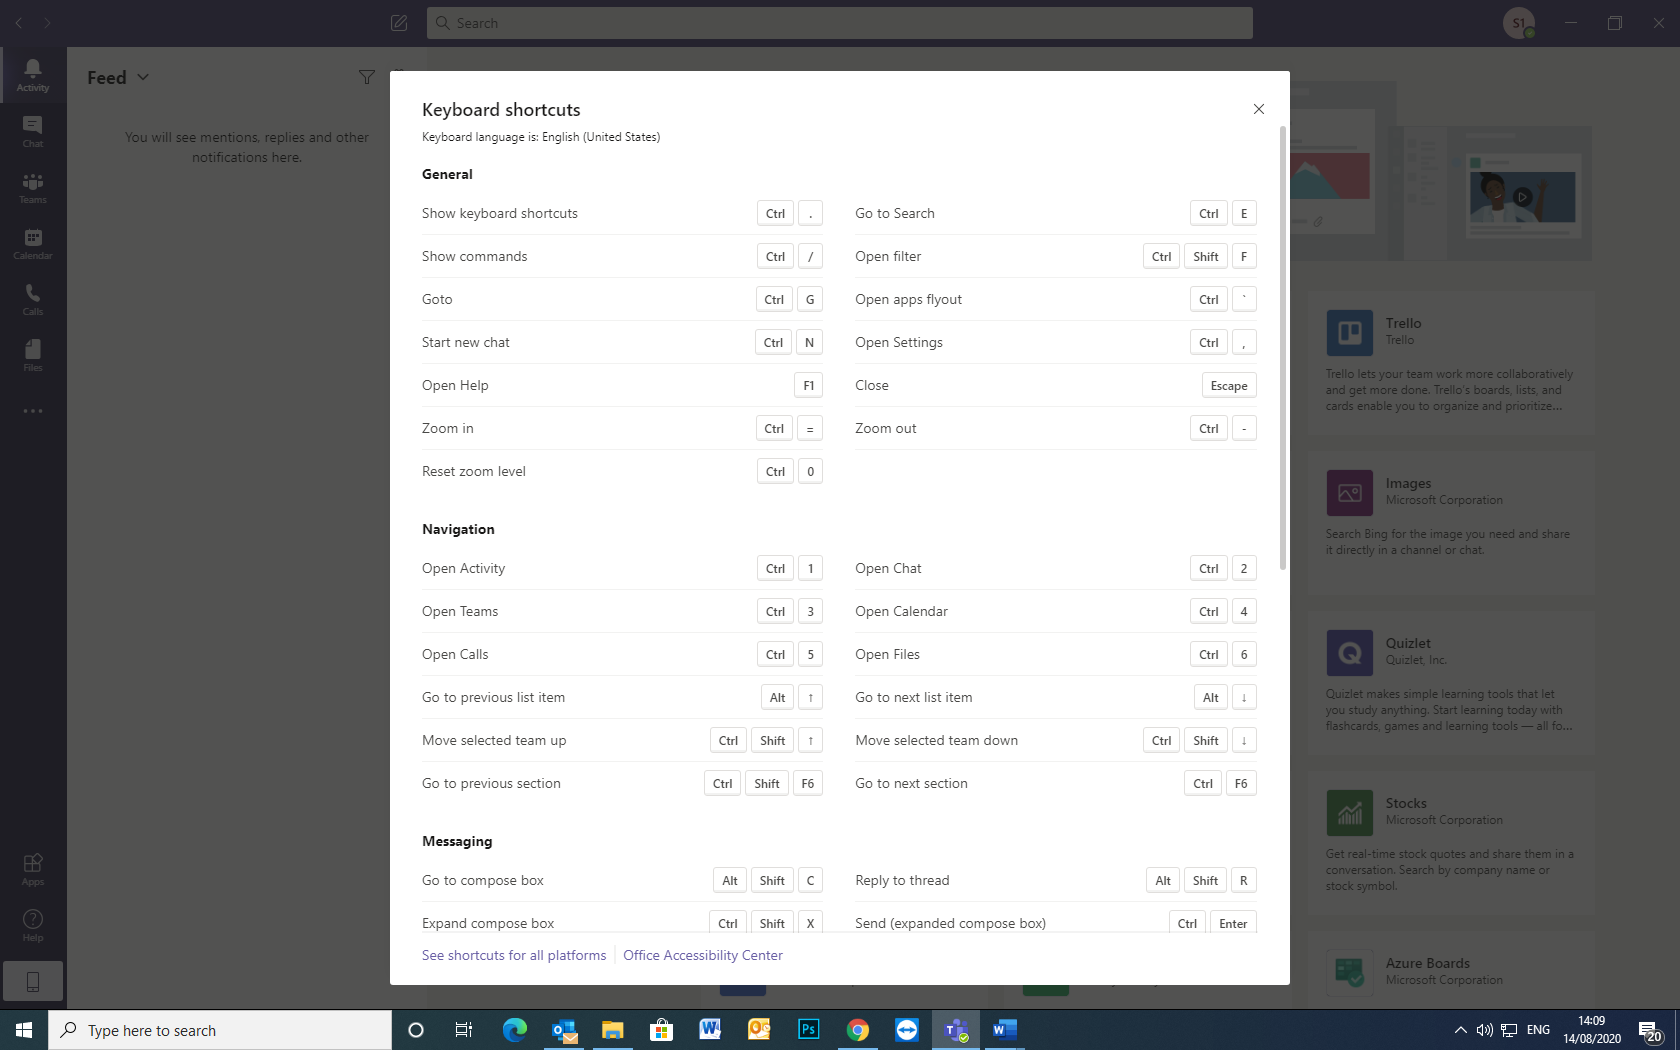 Image depicting keyboard shortcuts and commands in Microsoft Teams.